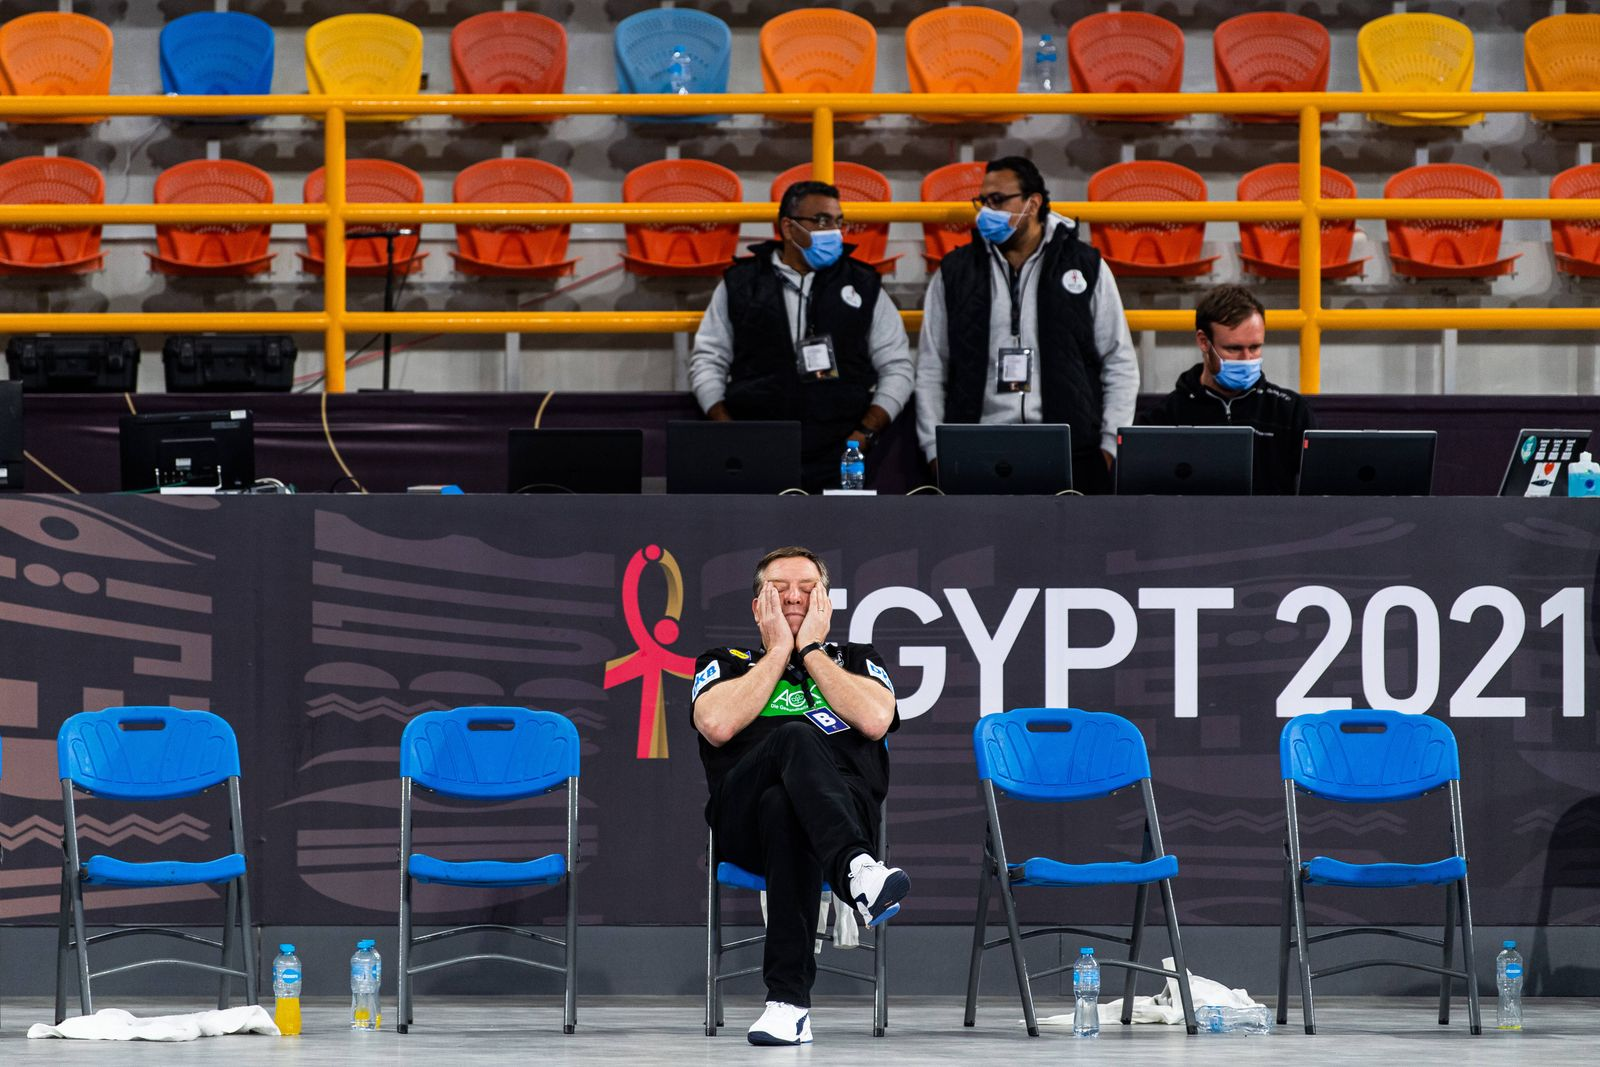 210121 Alfred Gislason, head coach of Germany looks dejected after the 2021 IHF World Handball Championship match betwe